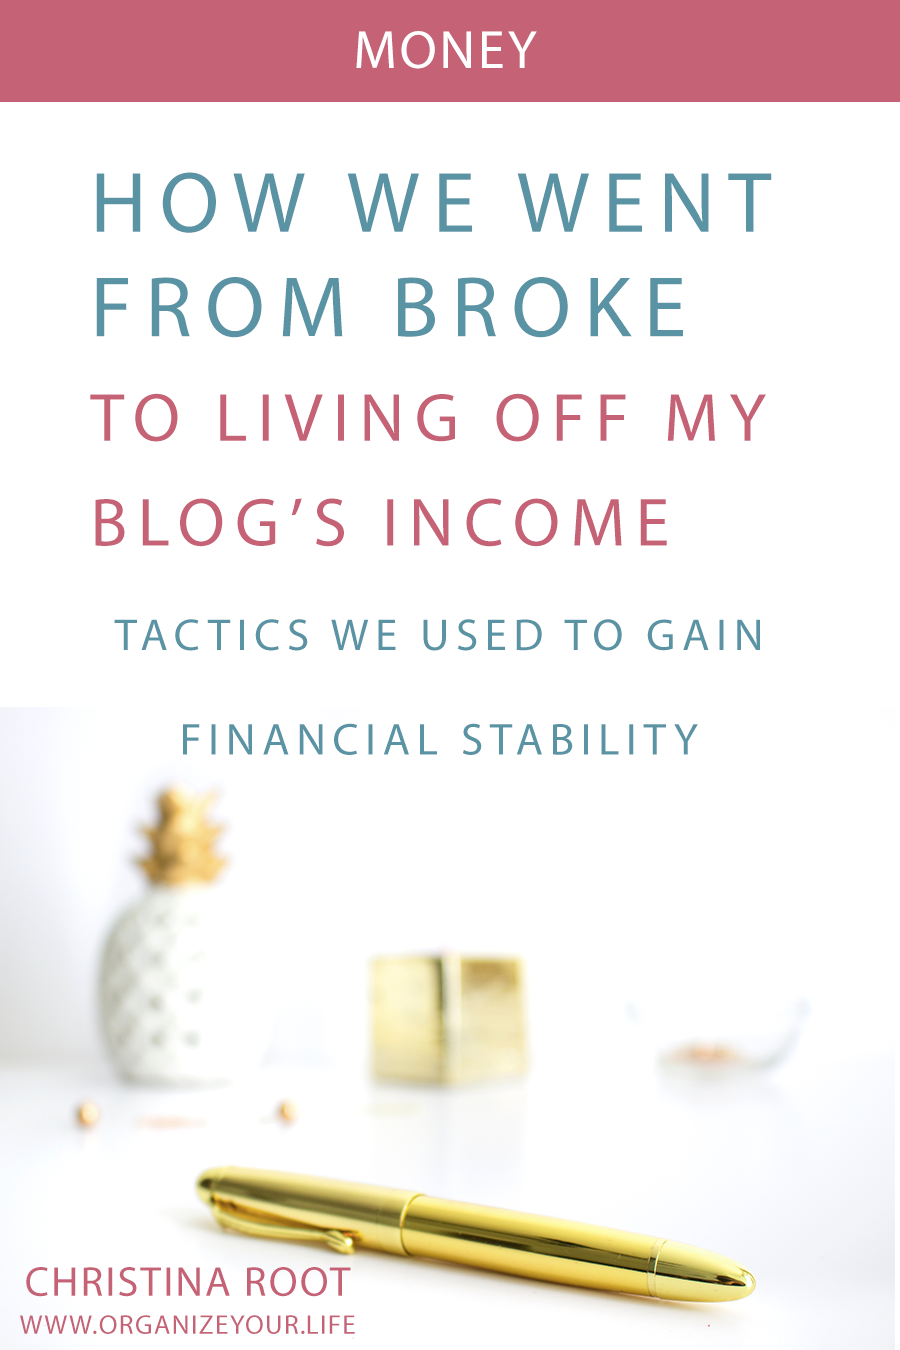 How we went from broke to living off just my business income